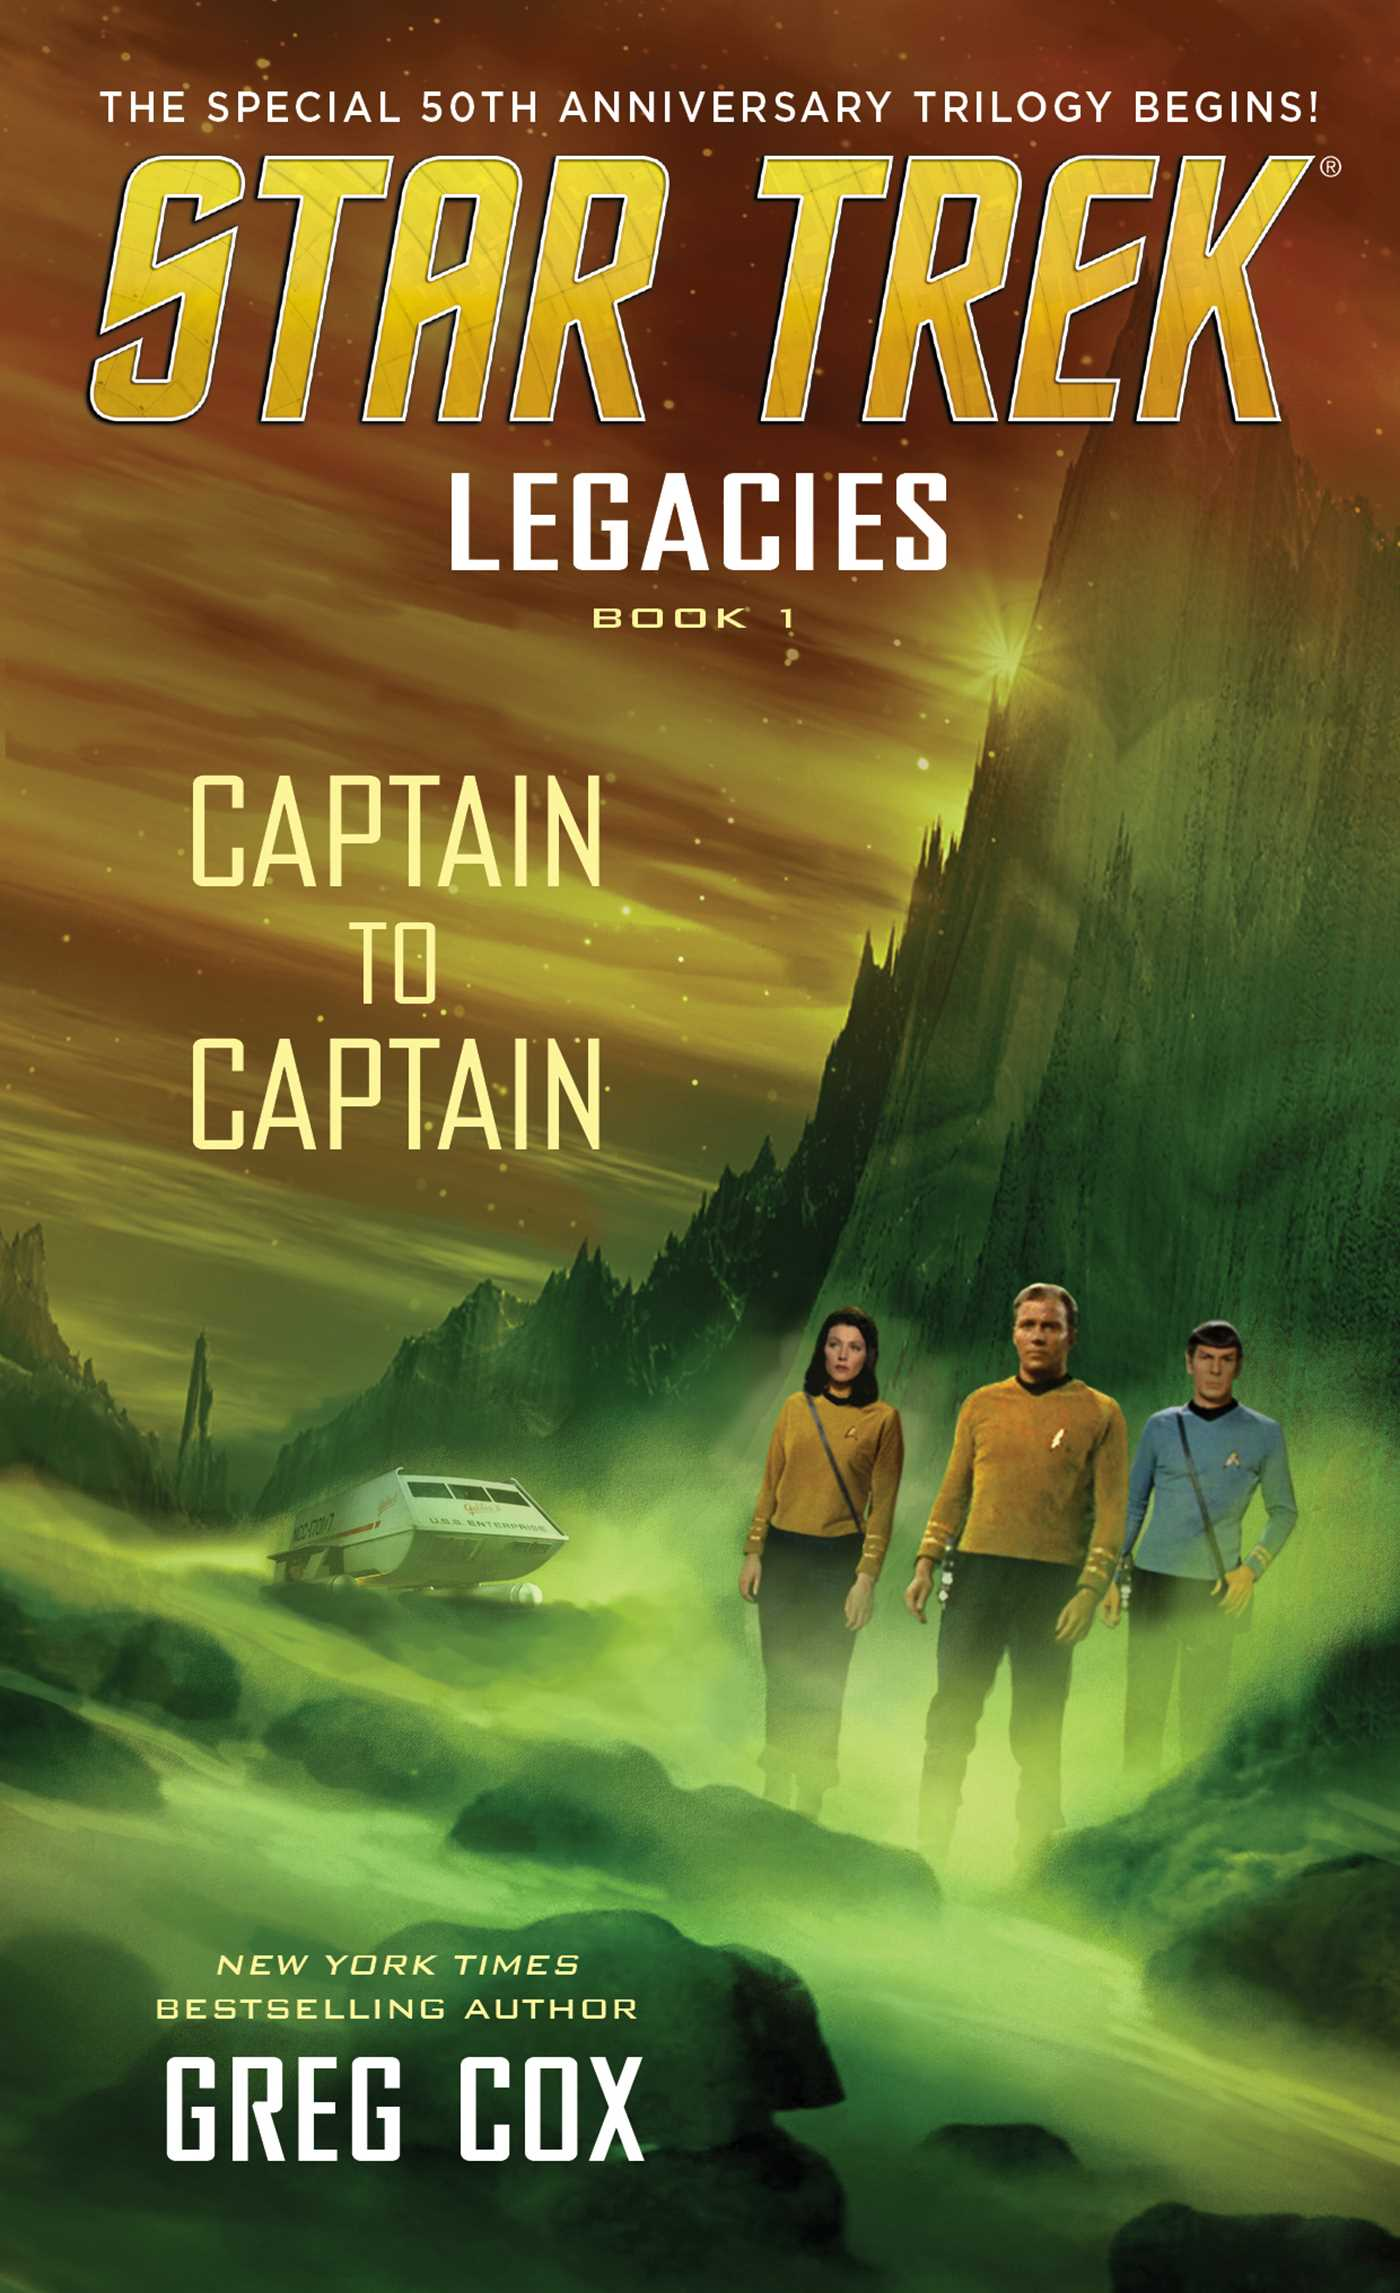 Legacies book 1 captain to captain 9781501125300 hr